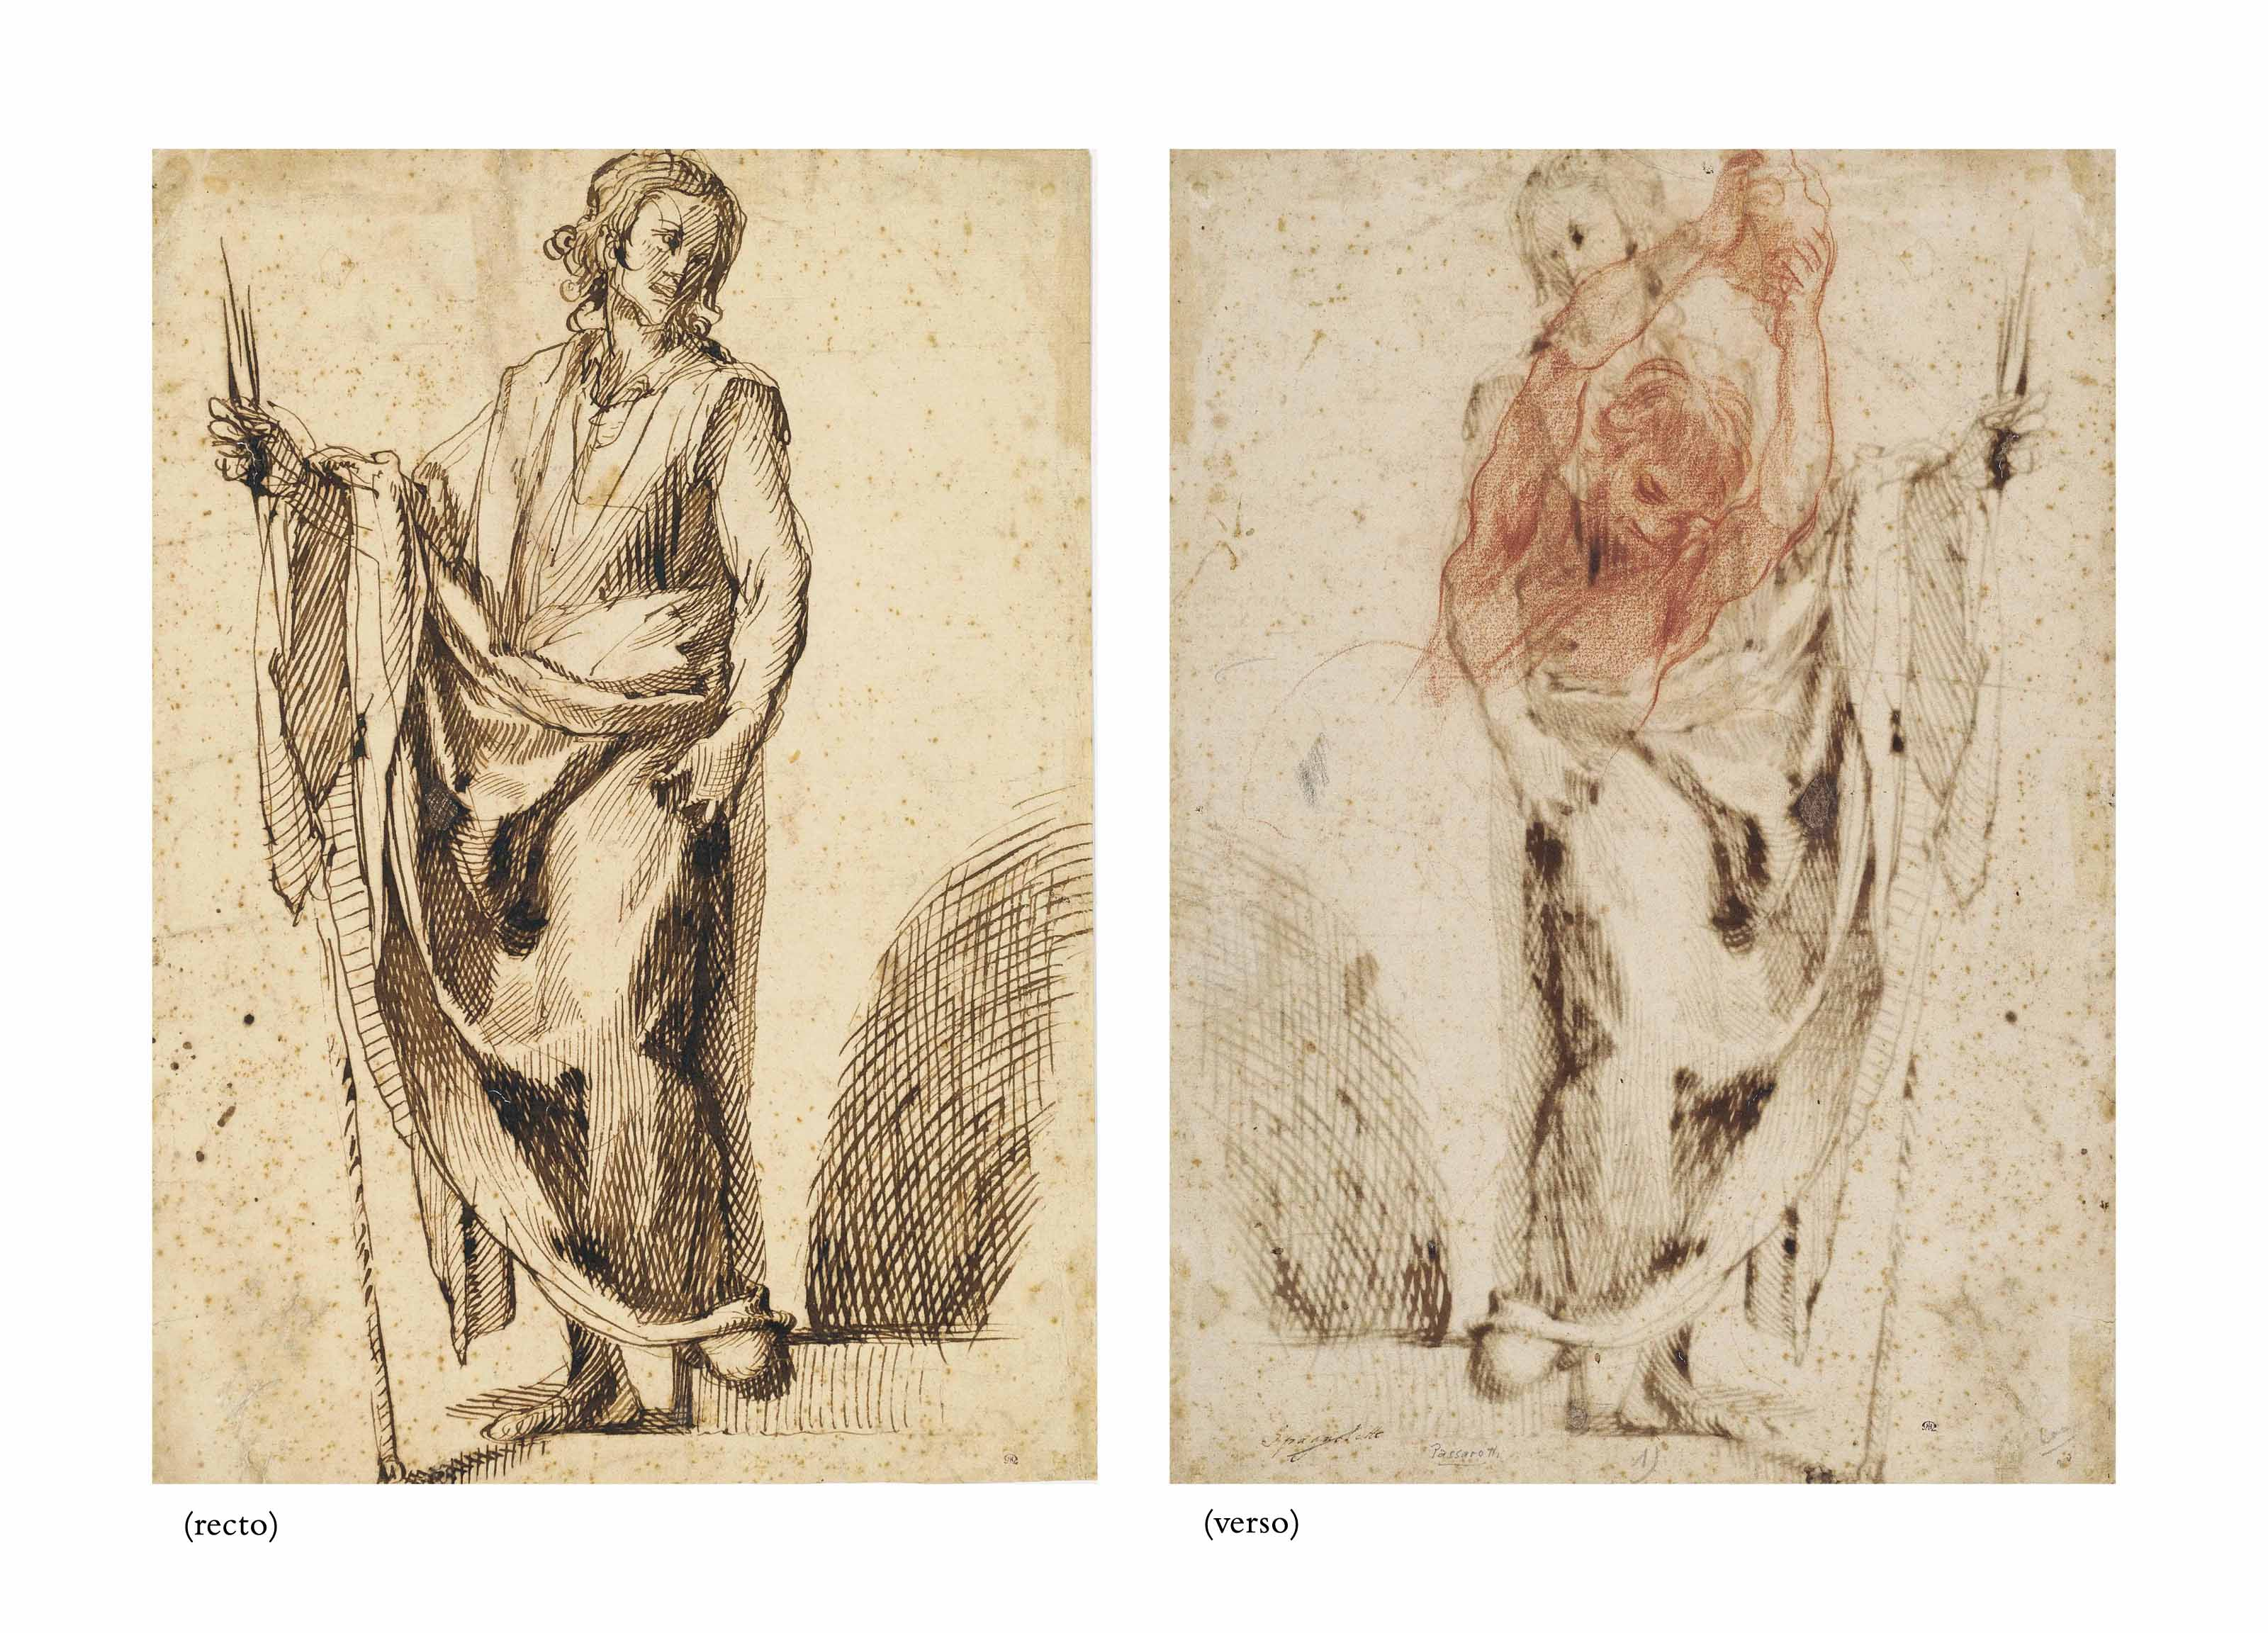 A standing apostle (recto), Study of an assailant in the Stoning of Saint Stephen (verso)